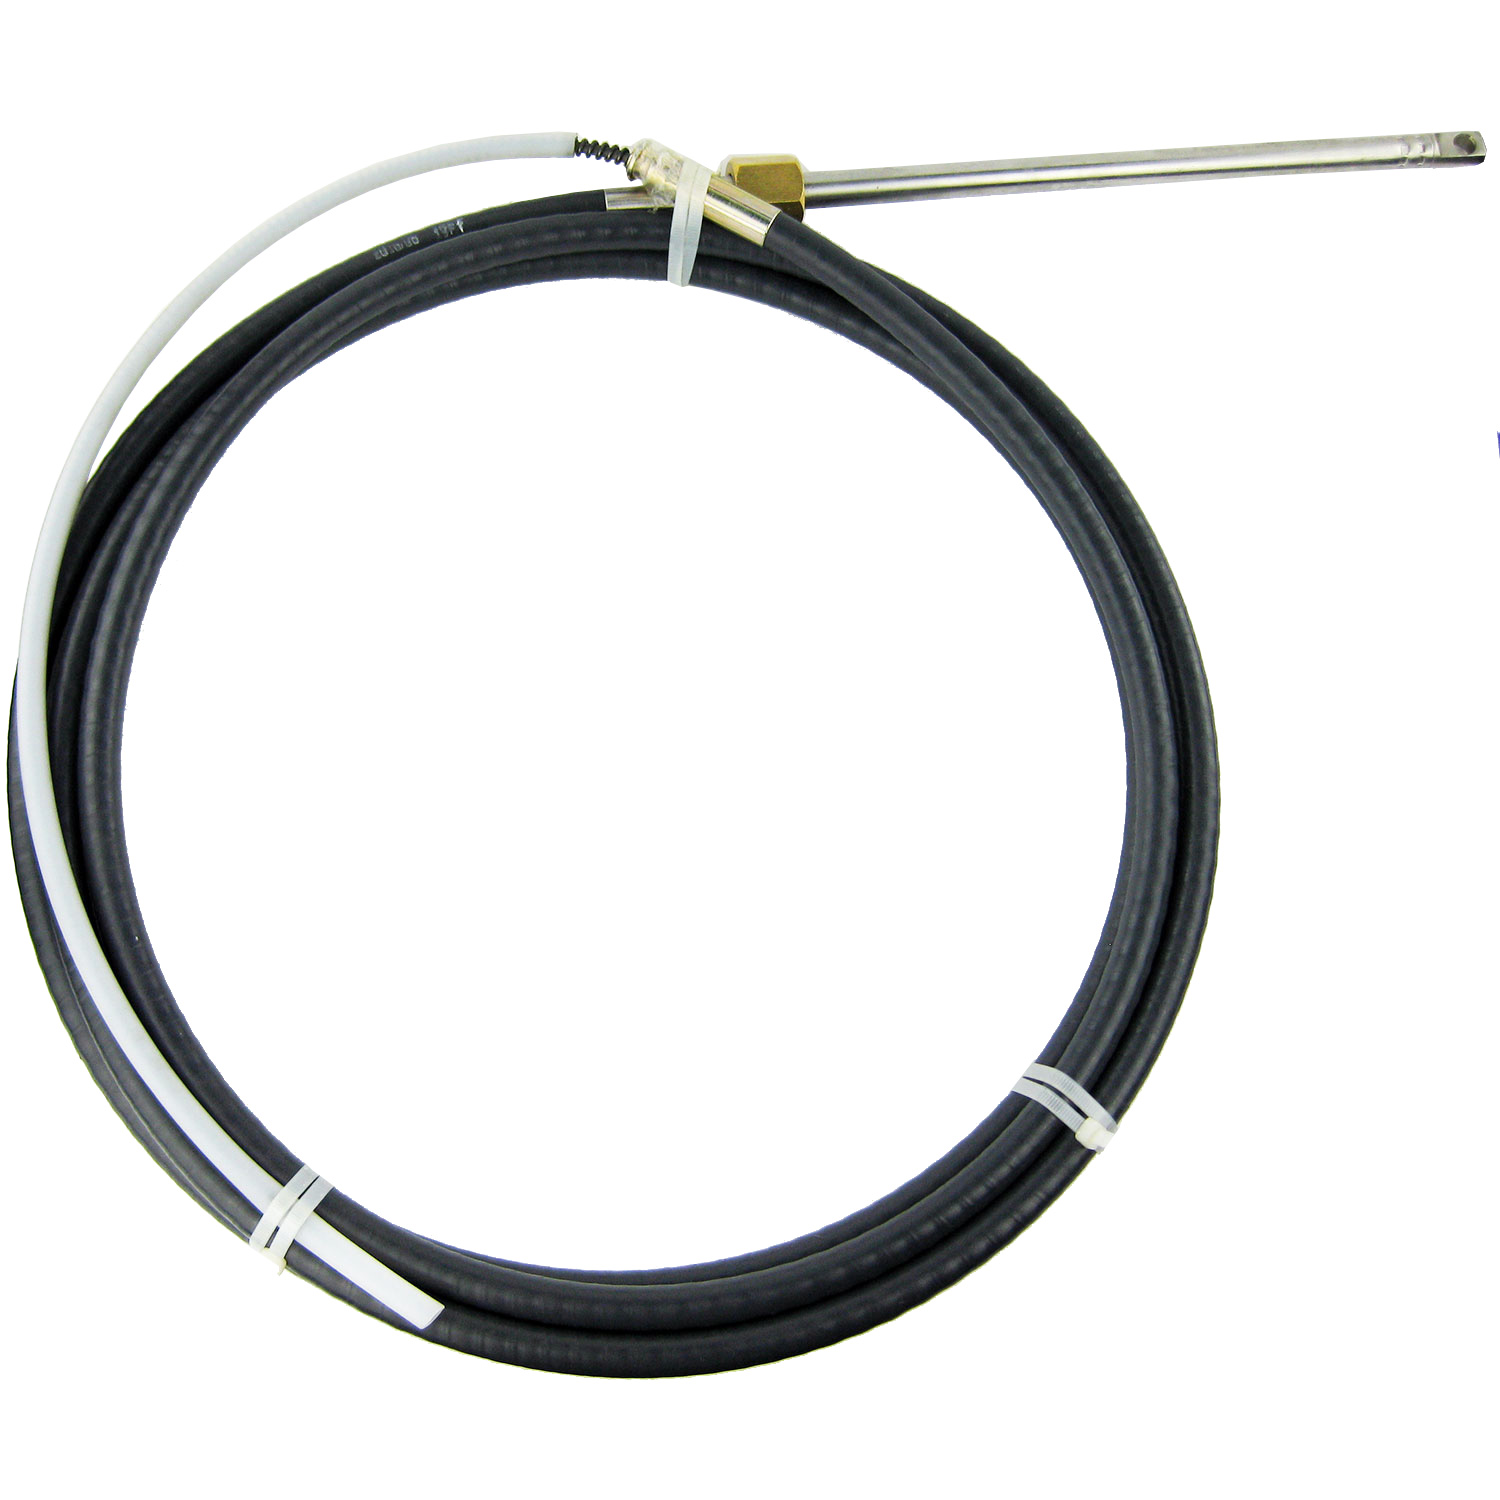 10ft Boat Outboard Mechanical Steering Cable Marine Engine